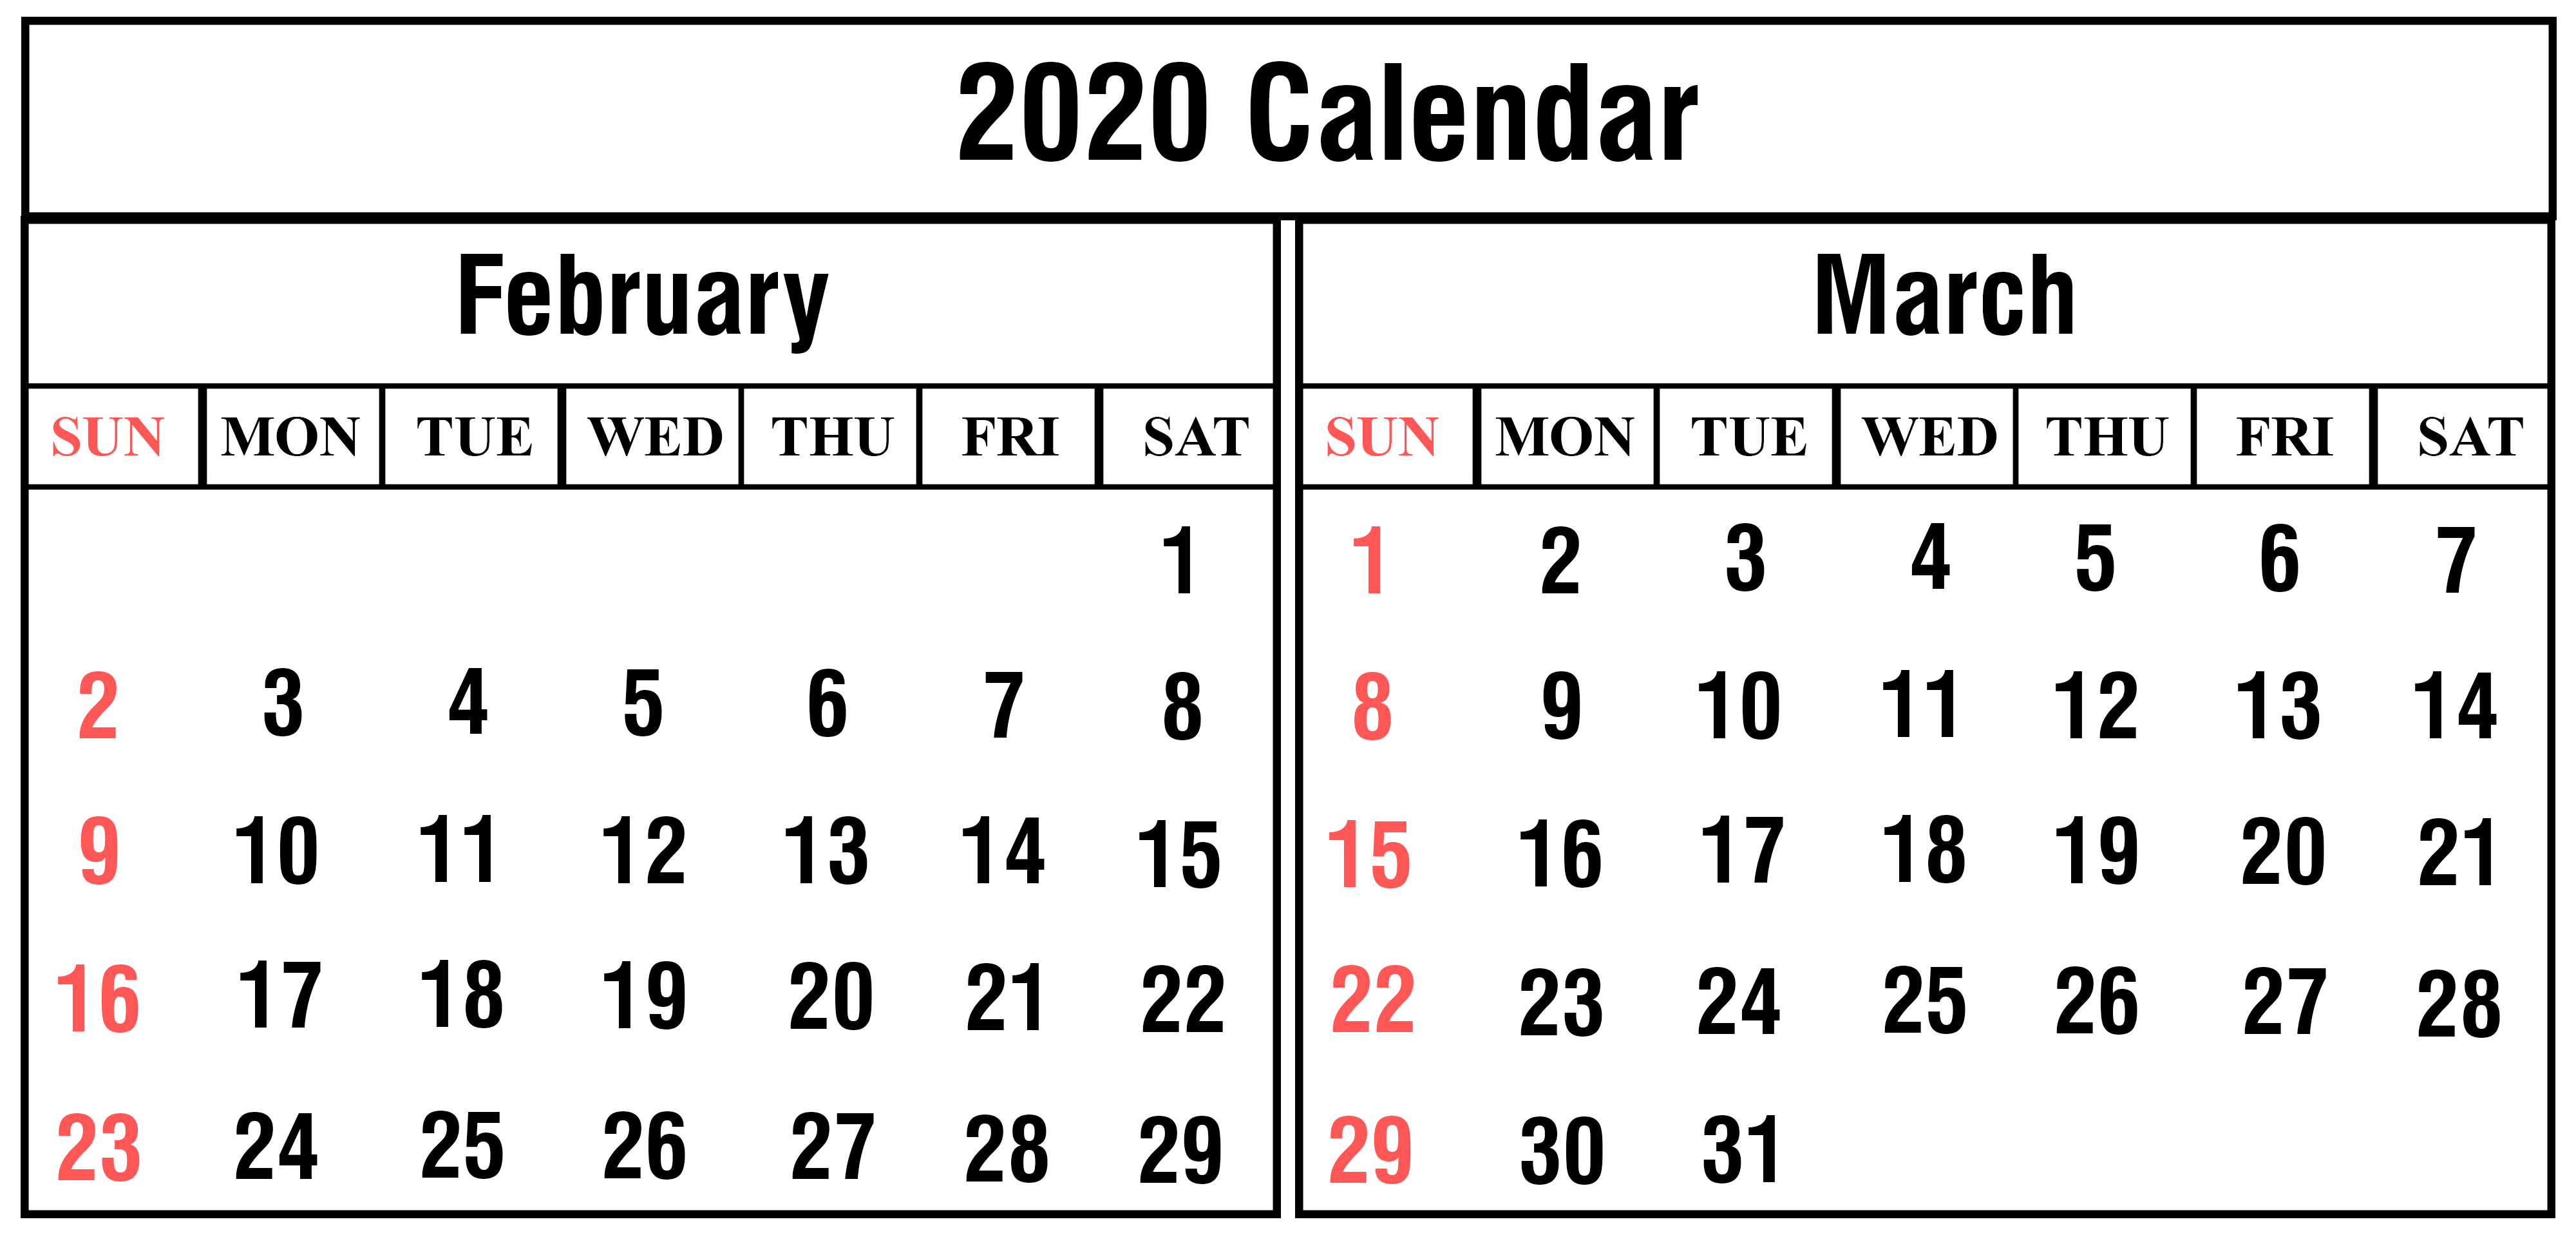 February 2020 Calendar Download  Yatay.horizonconsulting.co in 2020 Calendar February And March